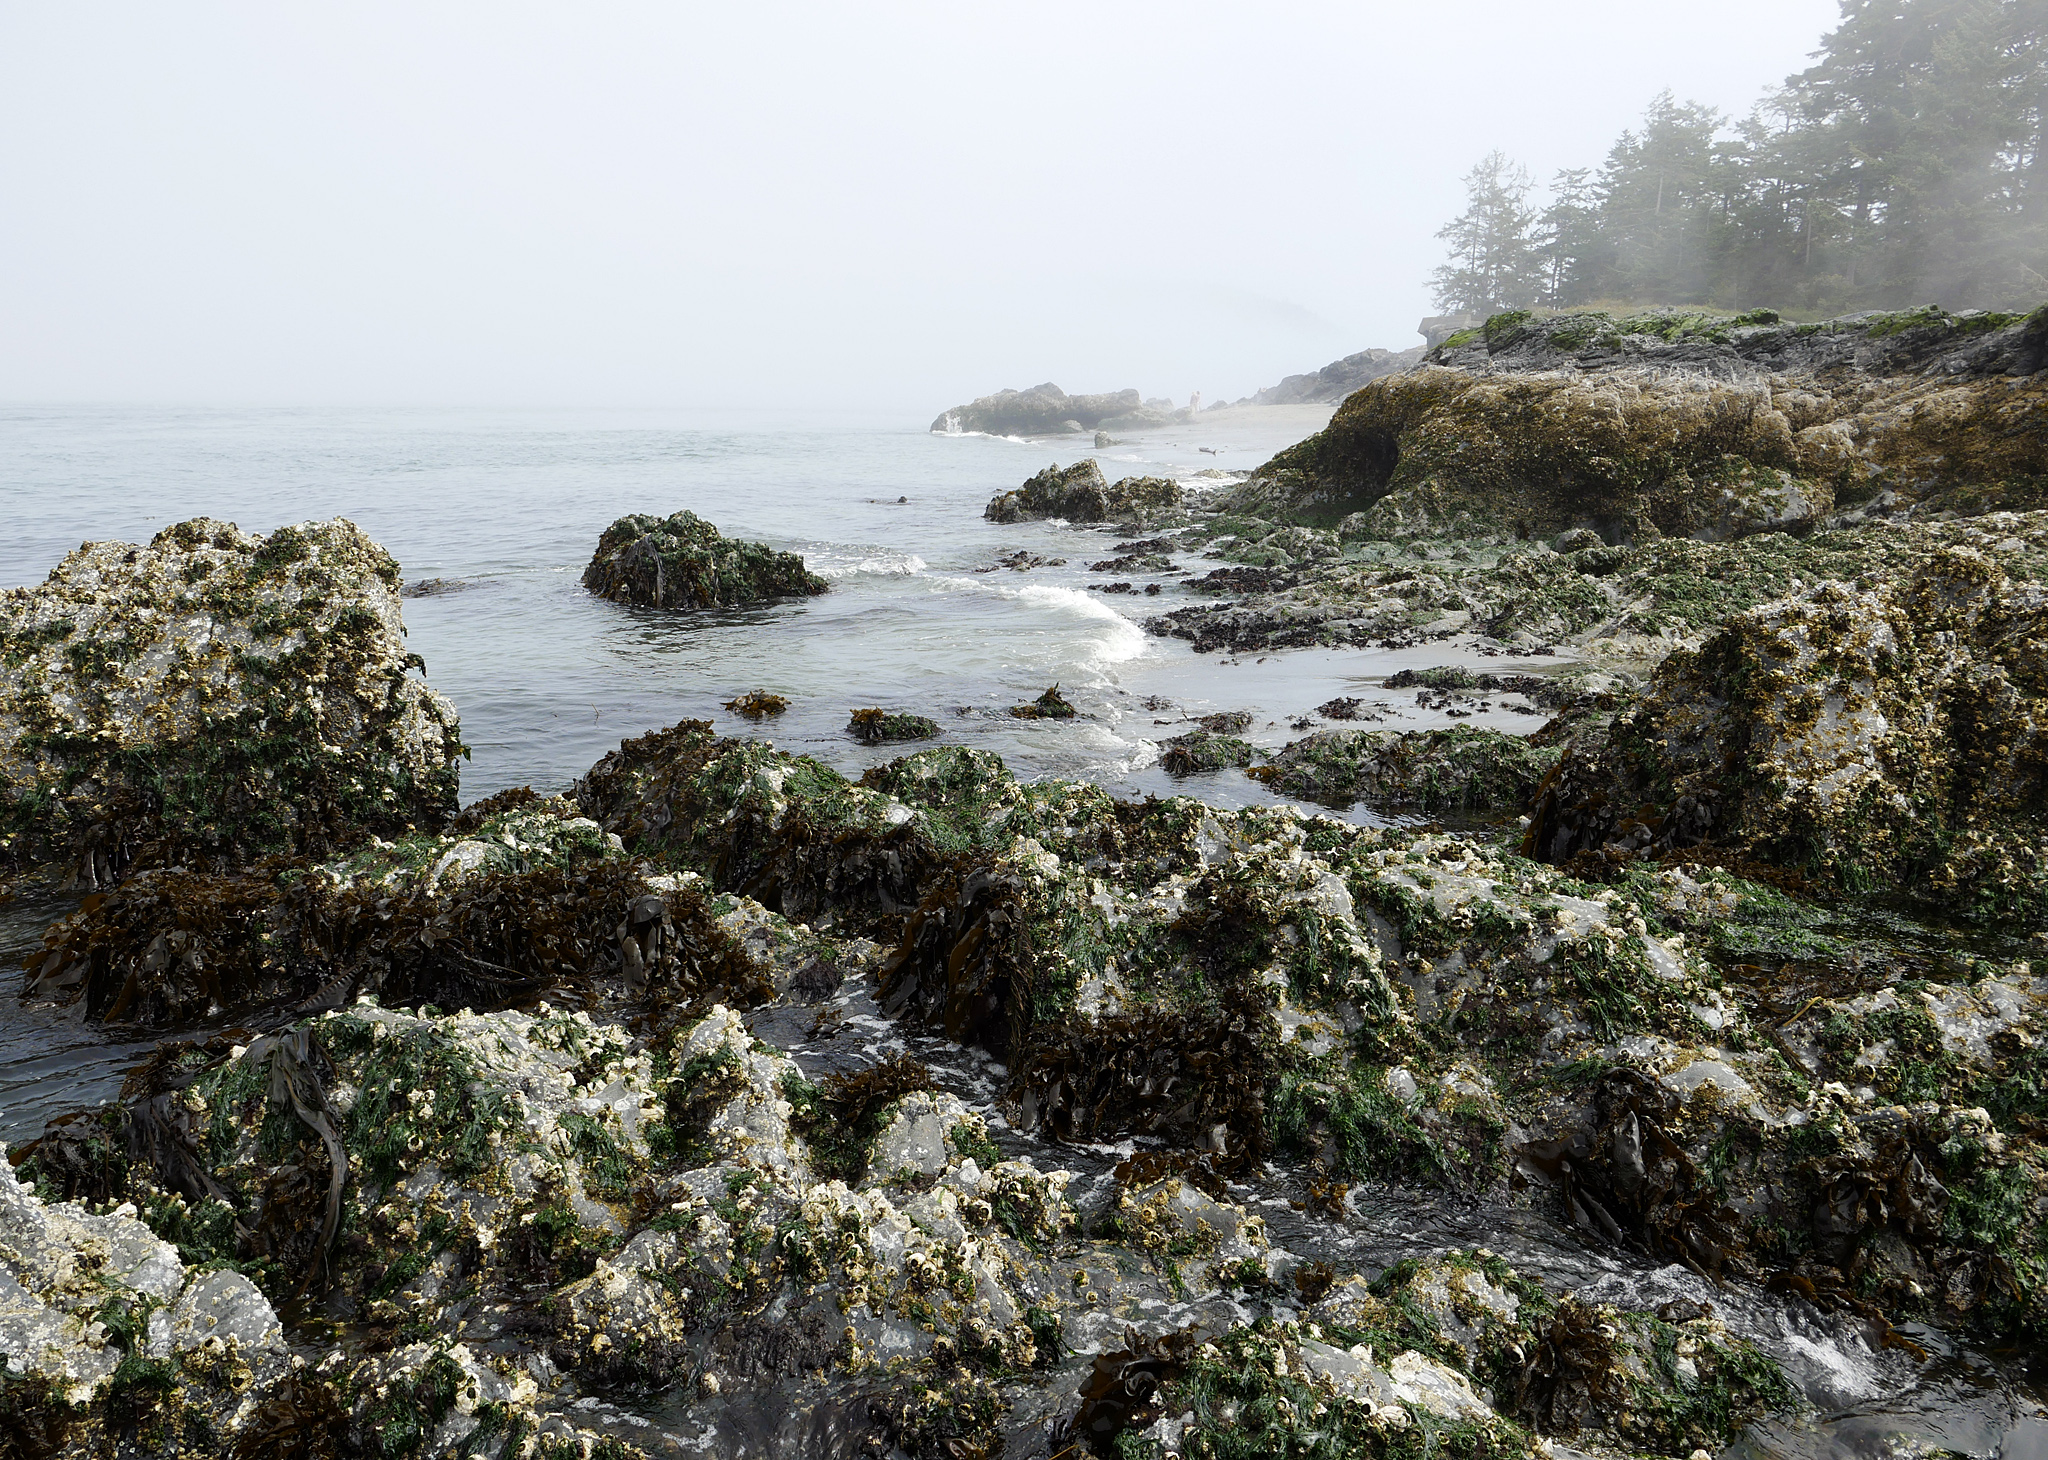 West Beach in Deception Pass SP on Whidbey Island by bensonga in bensonga